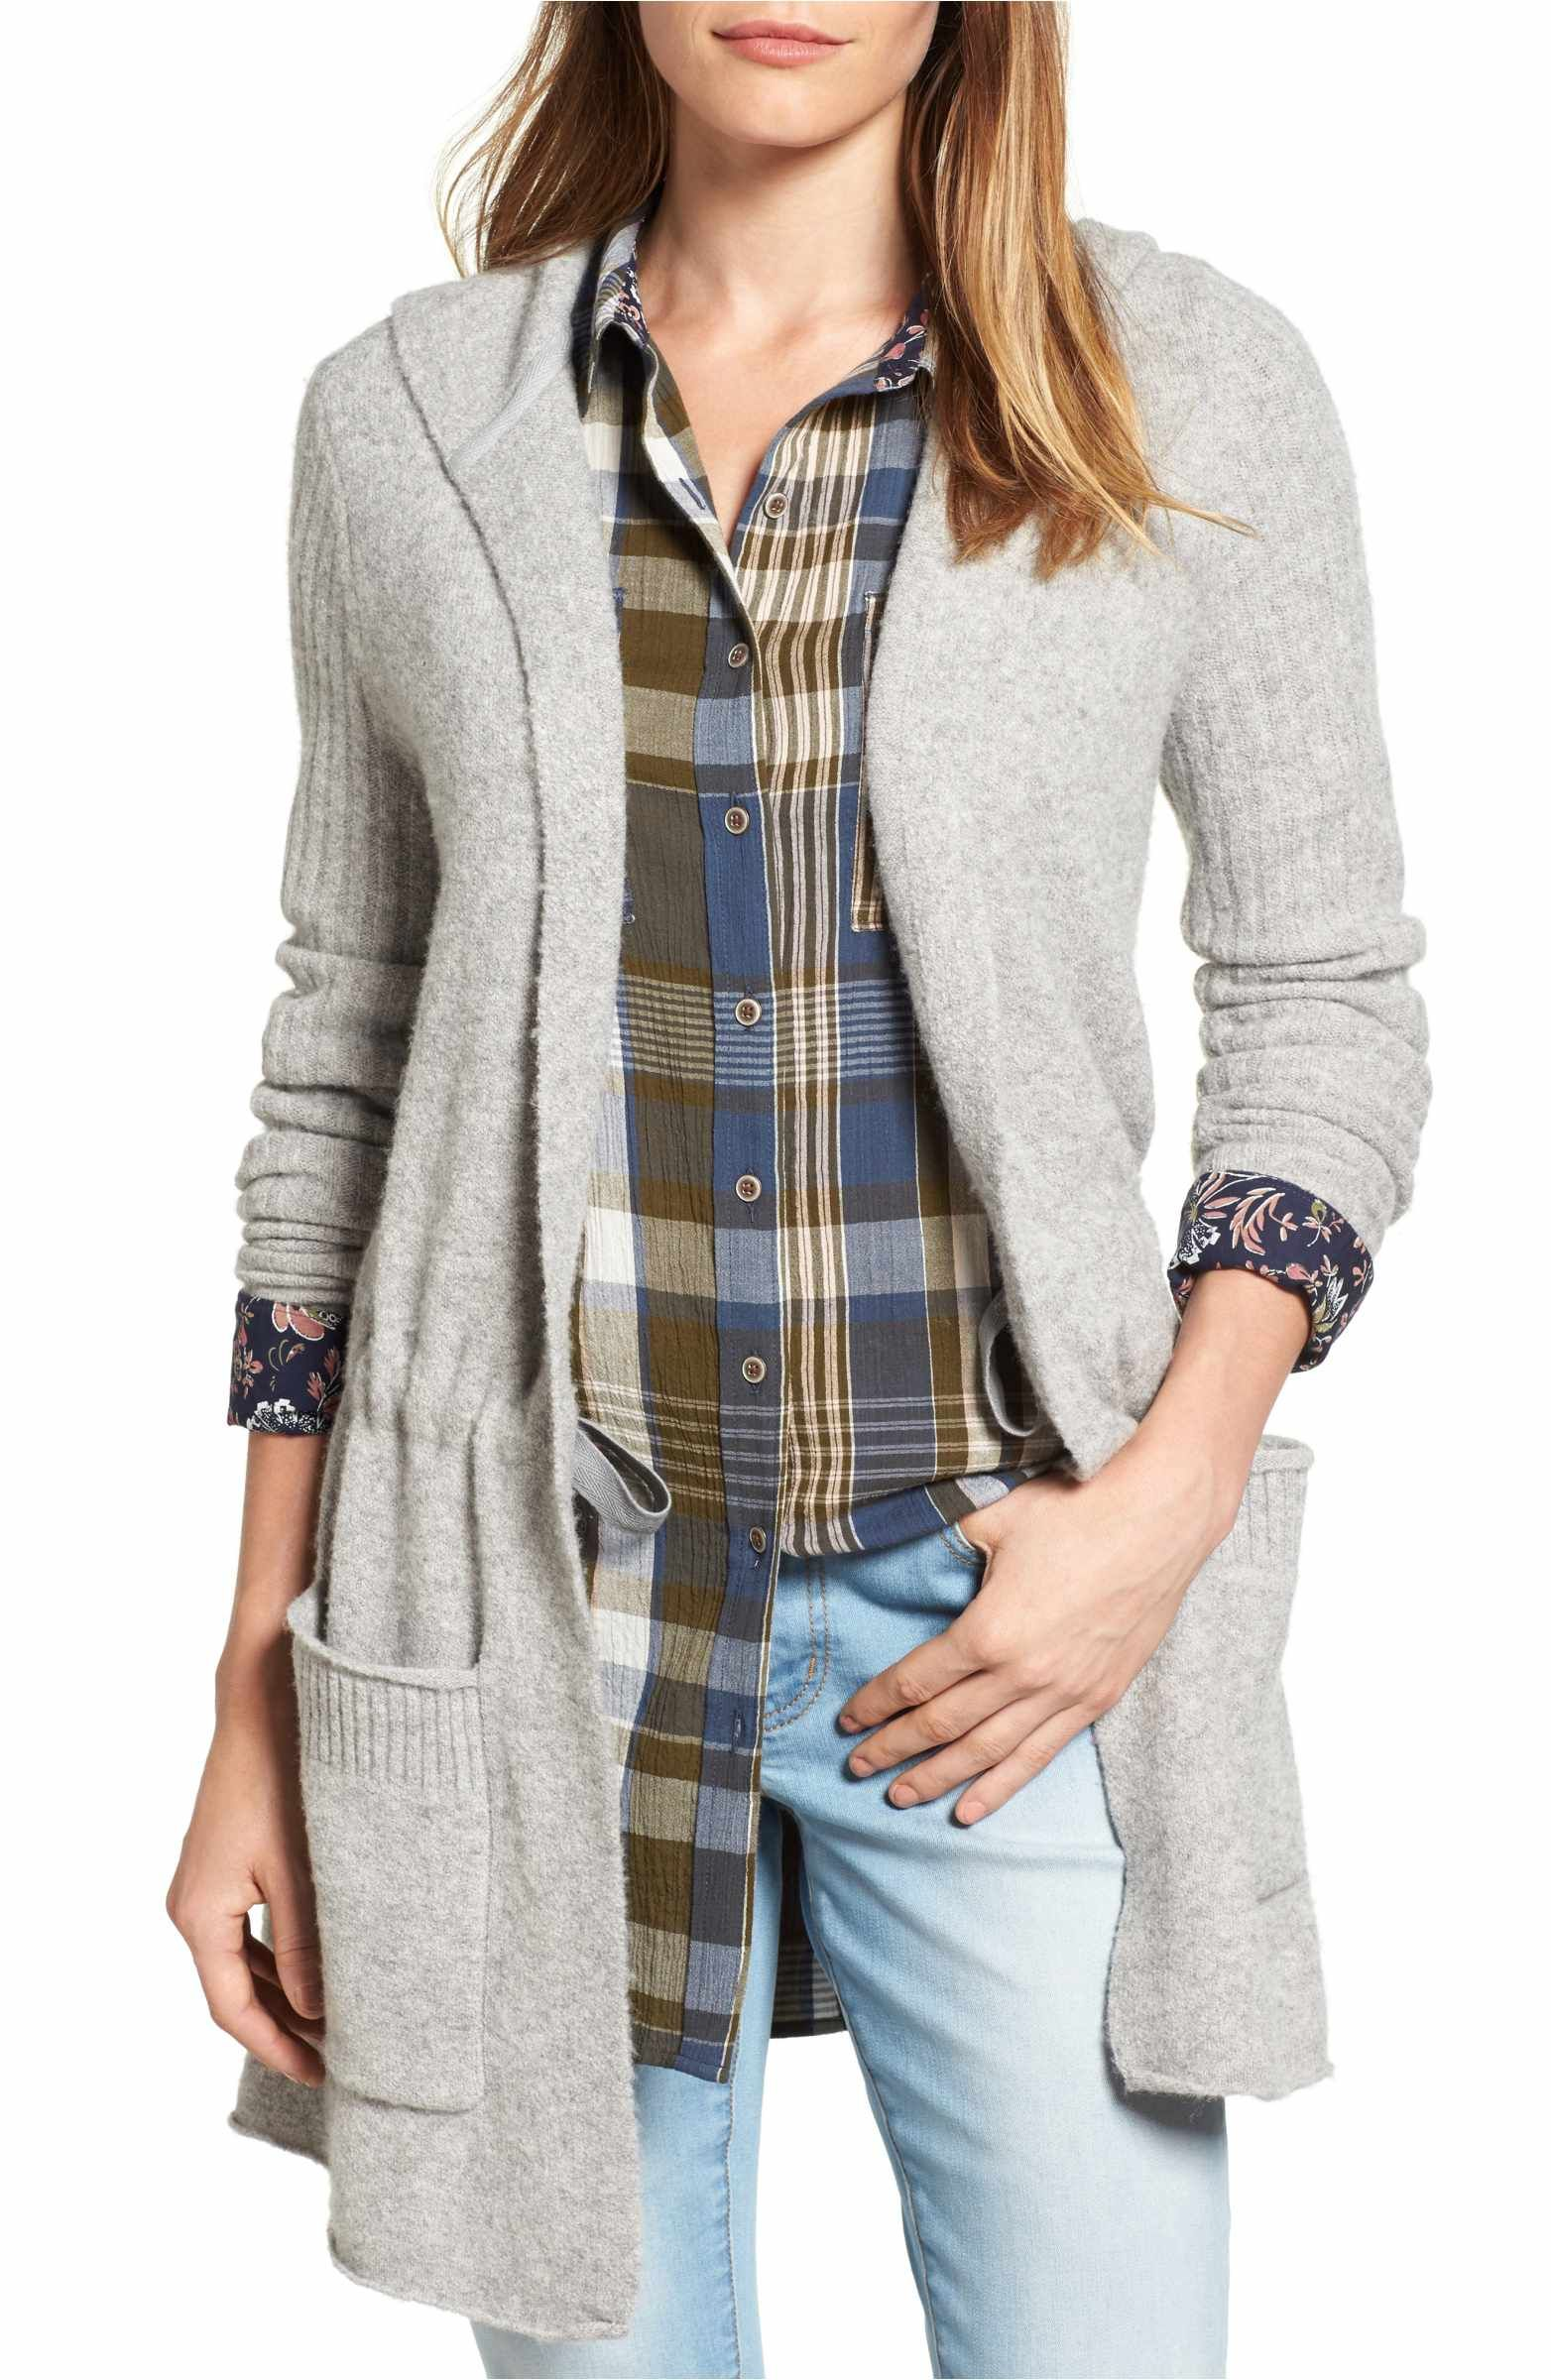 Hooded Cardigan | Hooded cardigan